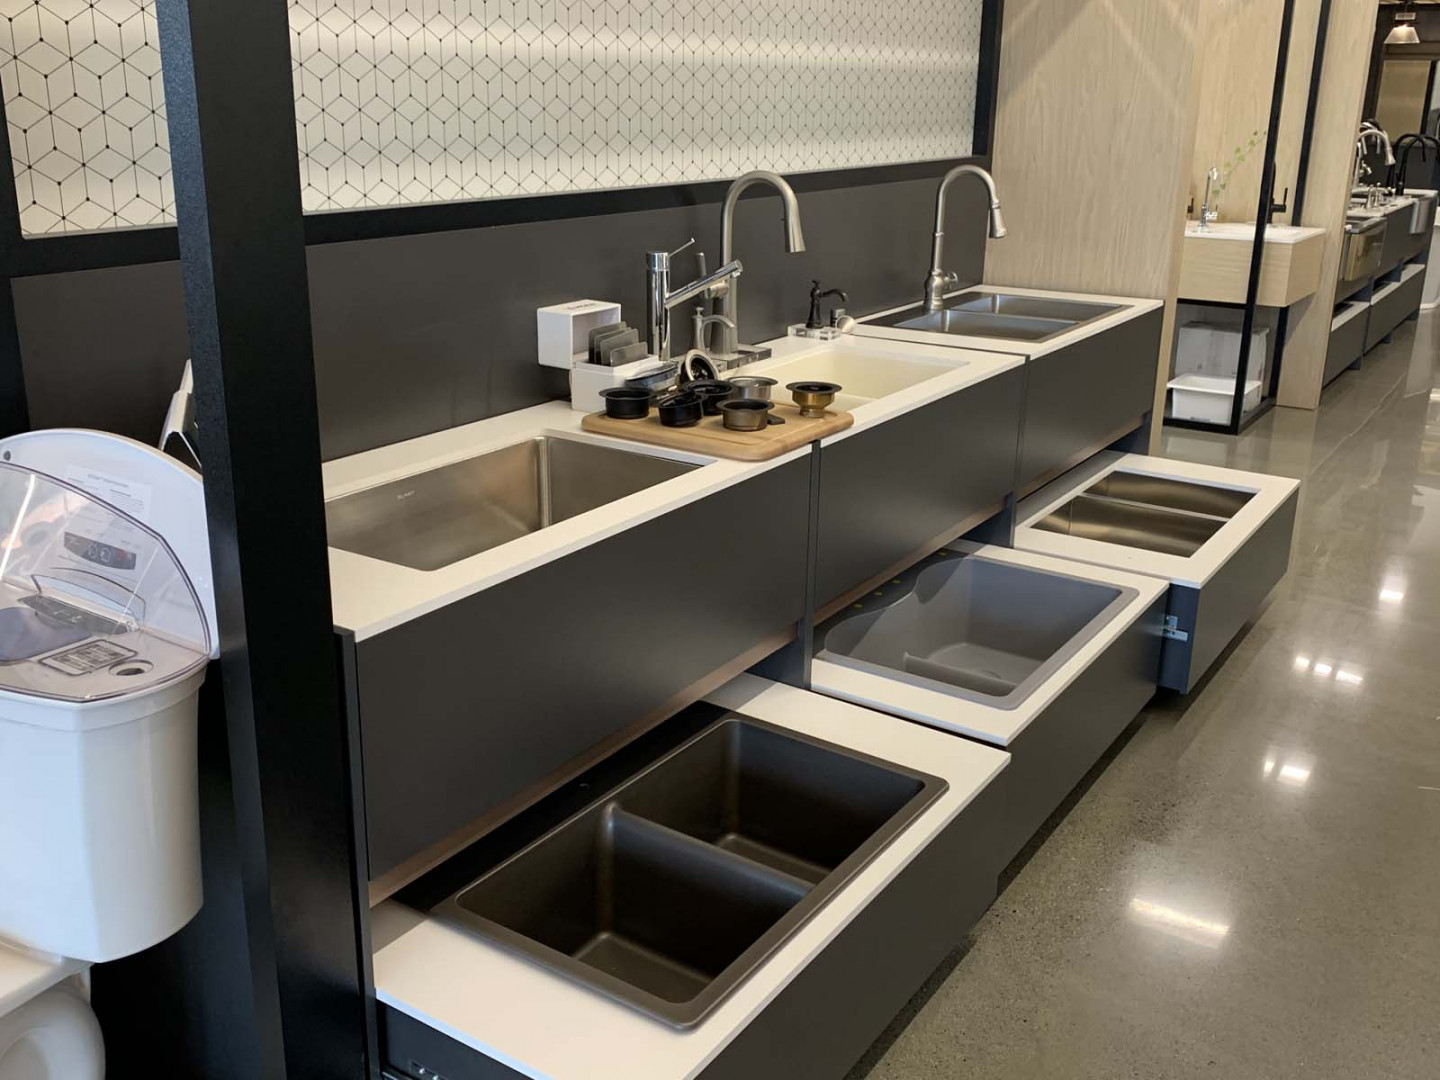 Give Your Kitchen a Top-Notch Sink